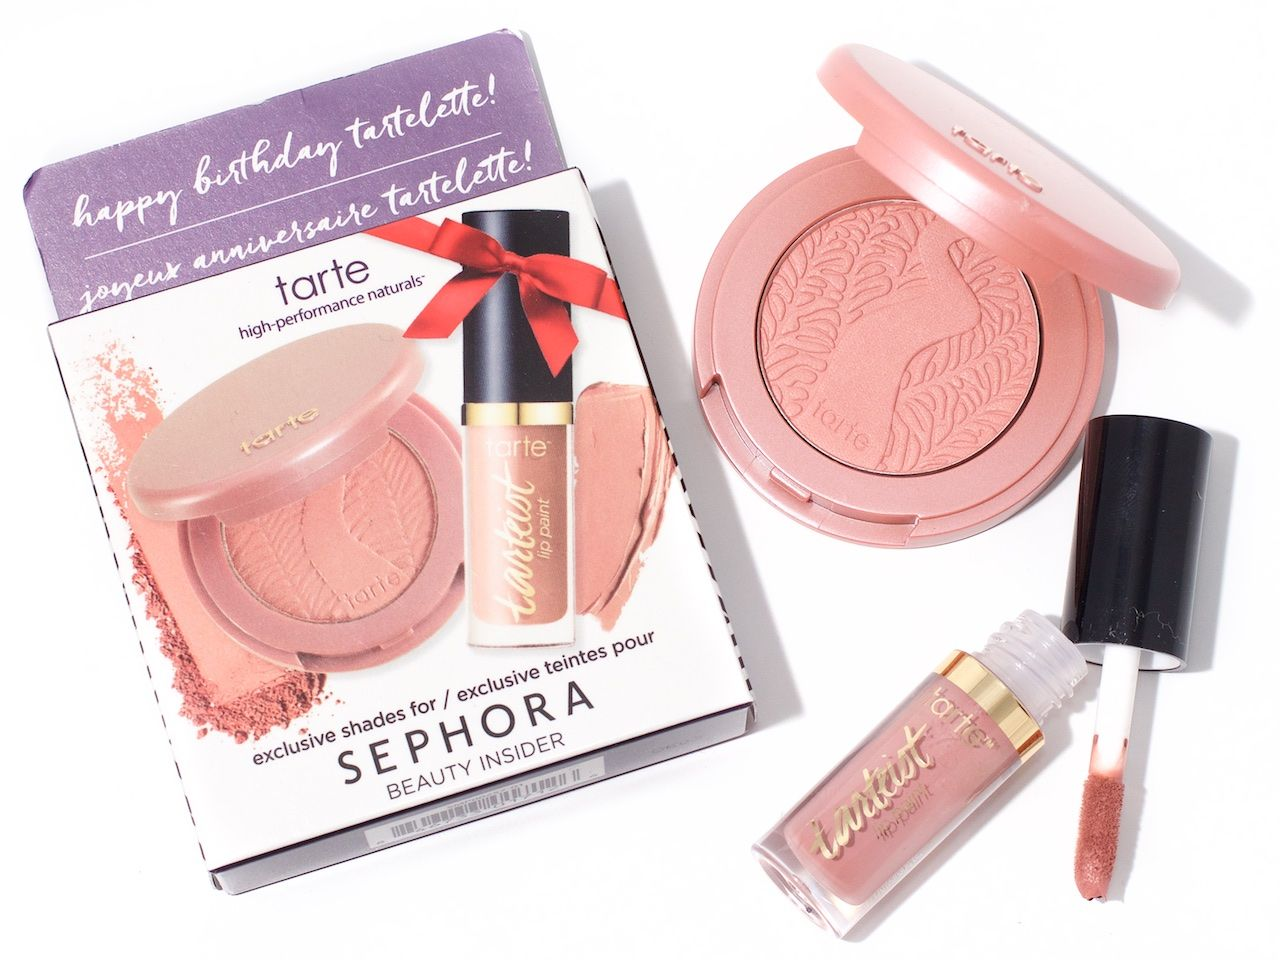 Sephora 2017 Beauty Insider Birthday Gift Picked Mine Up Today Love The Shades And Shade Names Birthdaysuit Paaarty